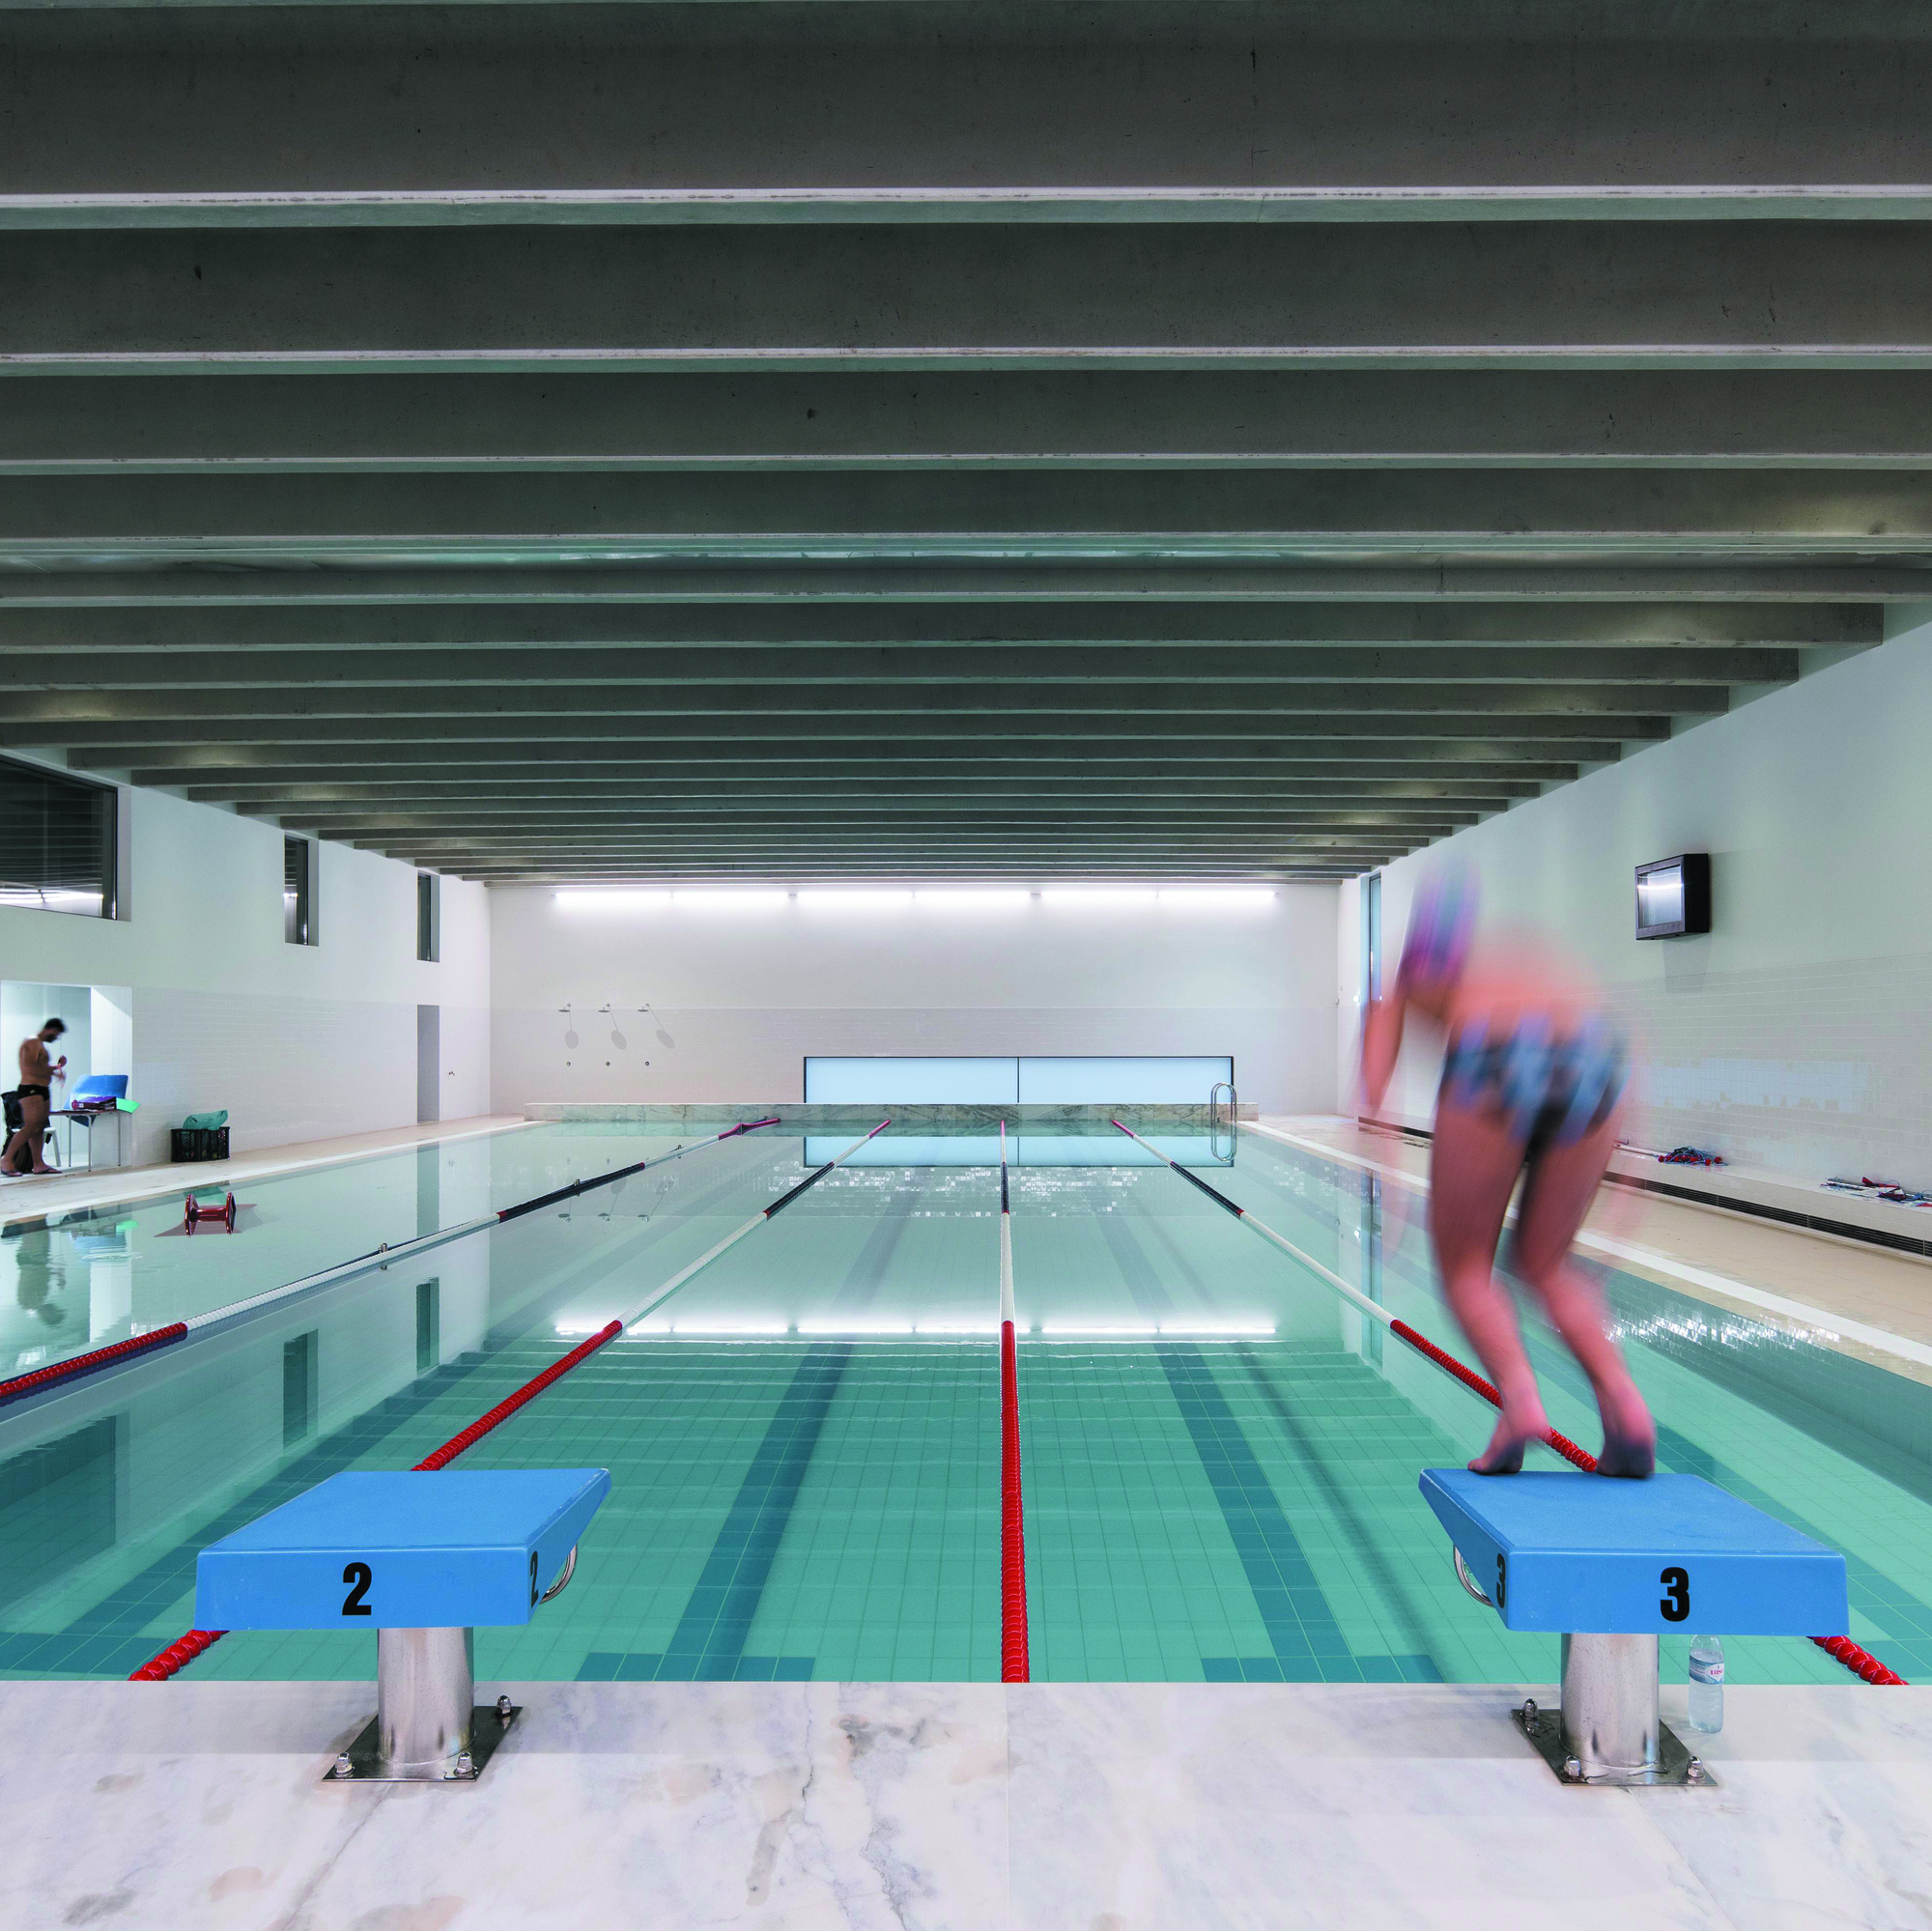 Elfanor Sports Centre, Matosinhos, Portugal - Image 1